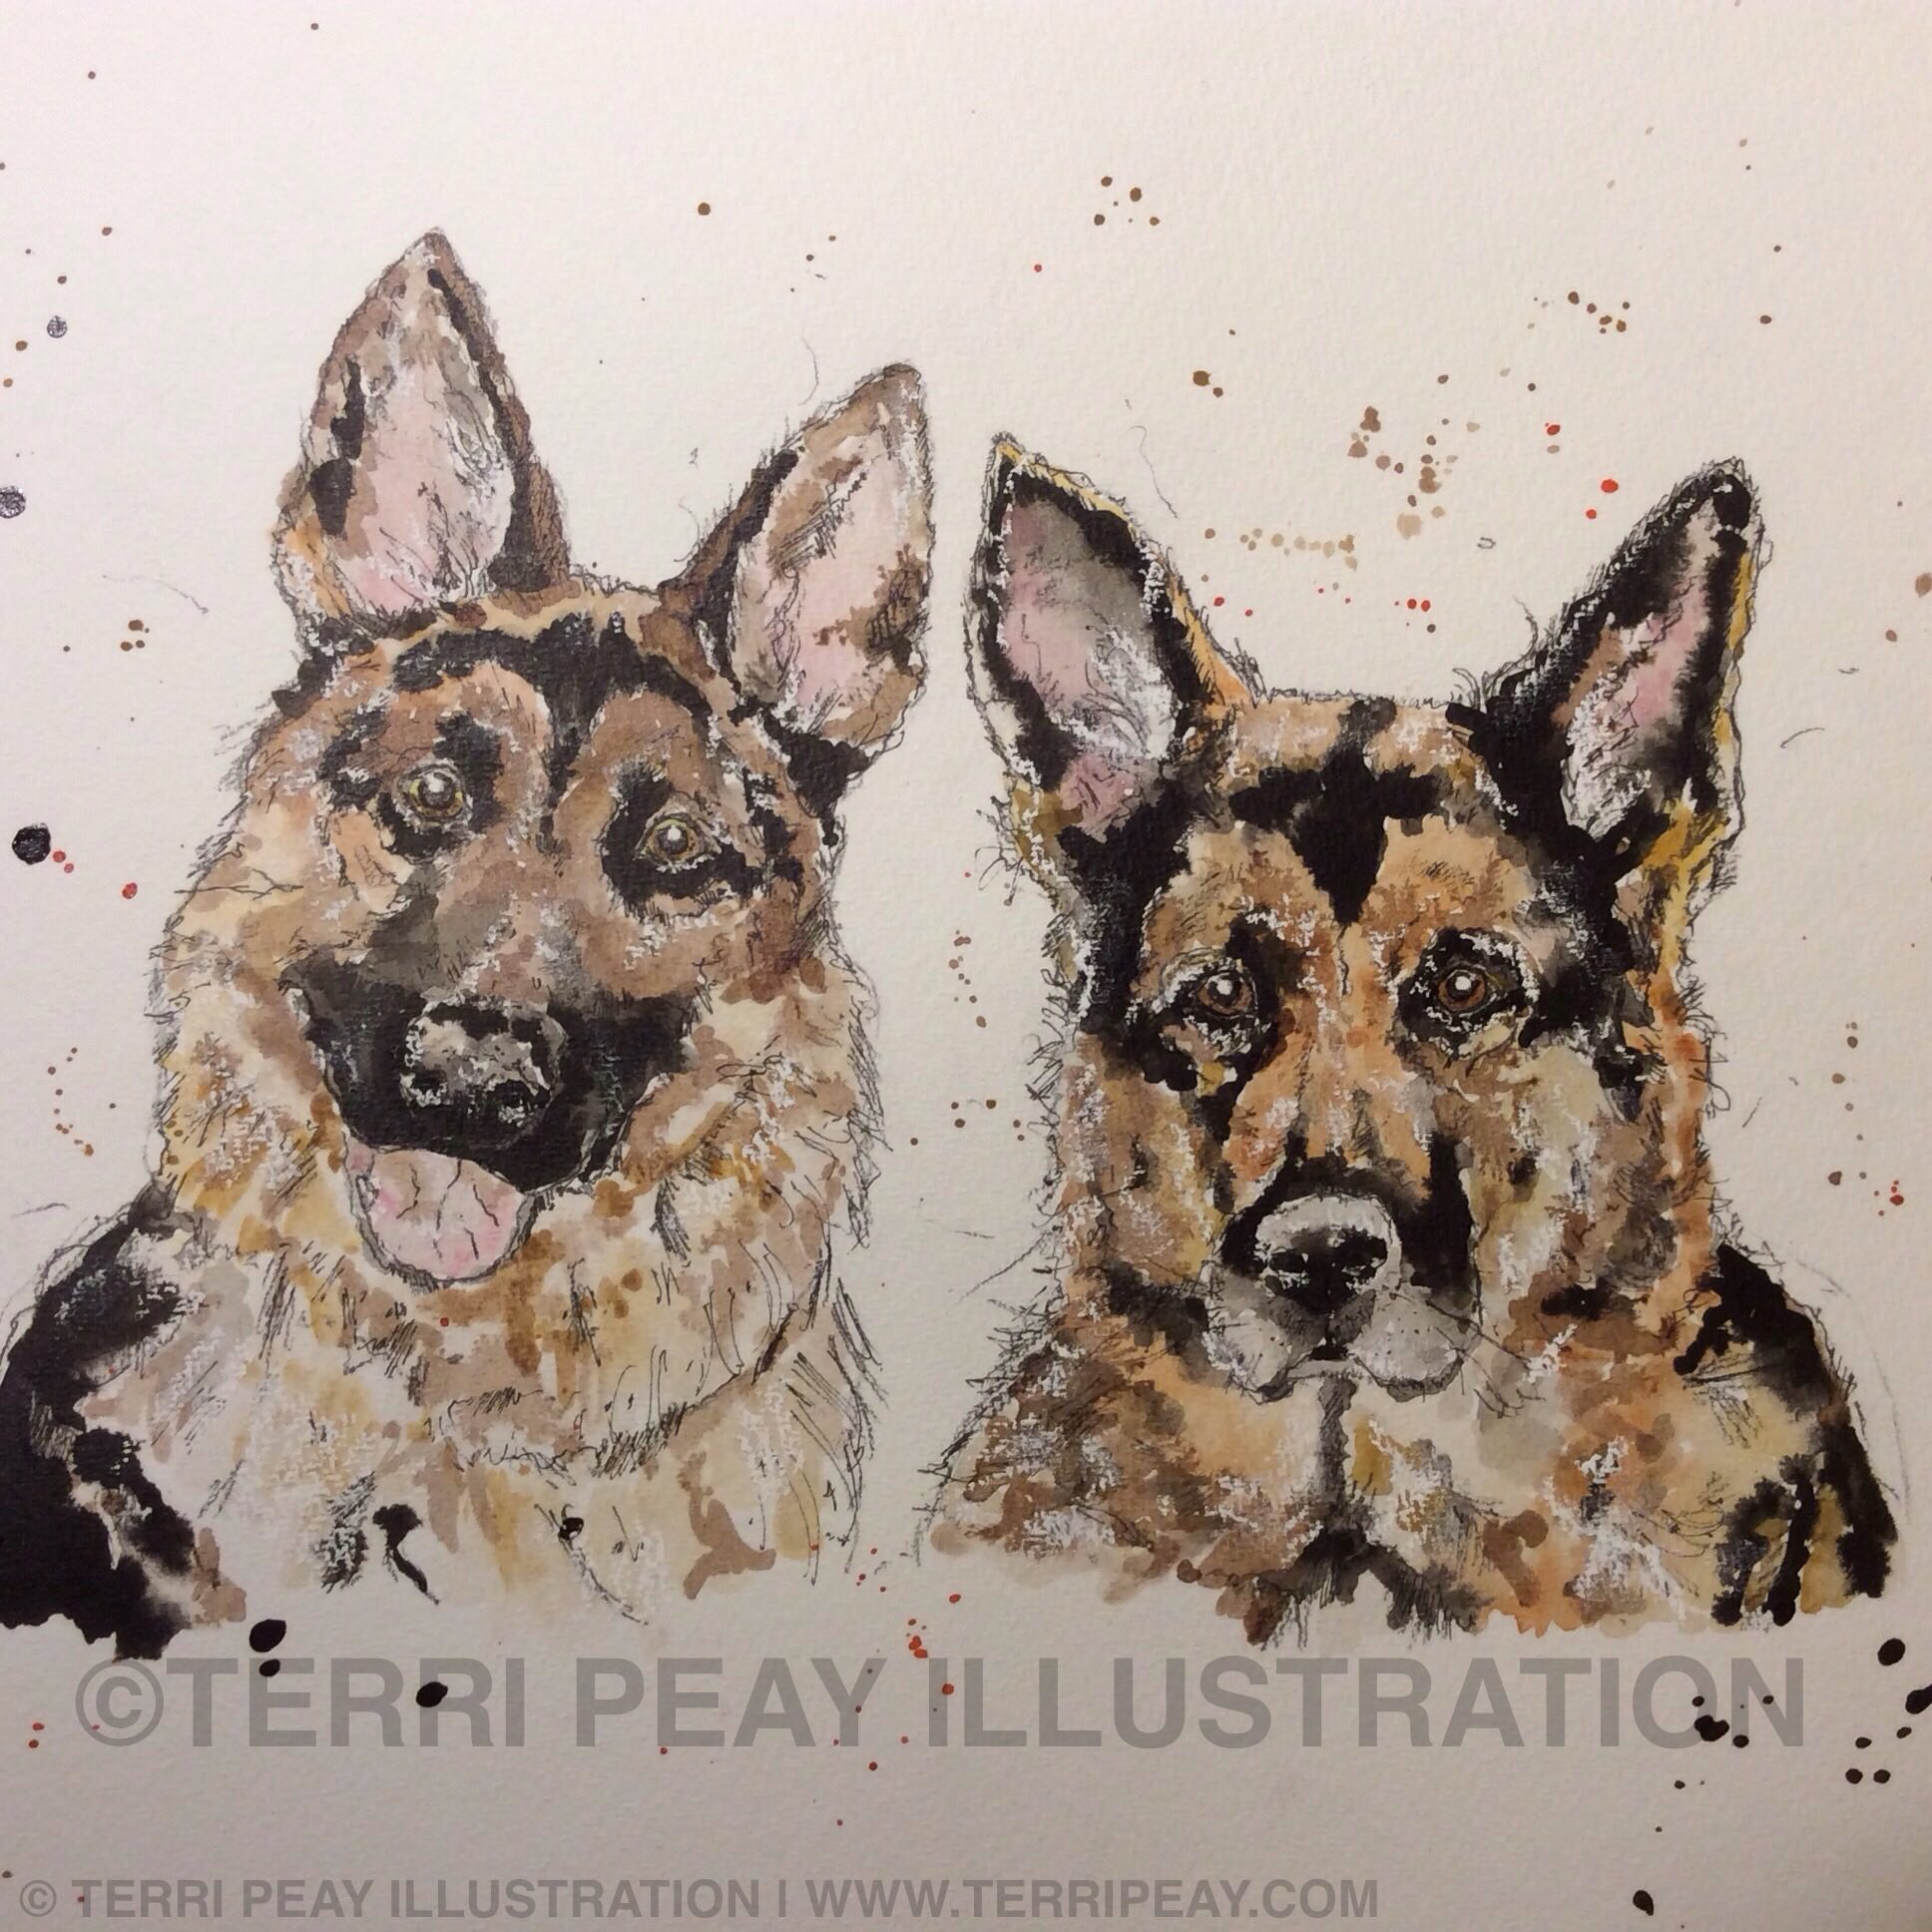 'German Shepherds' by Terri Peay